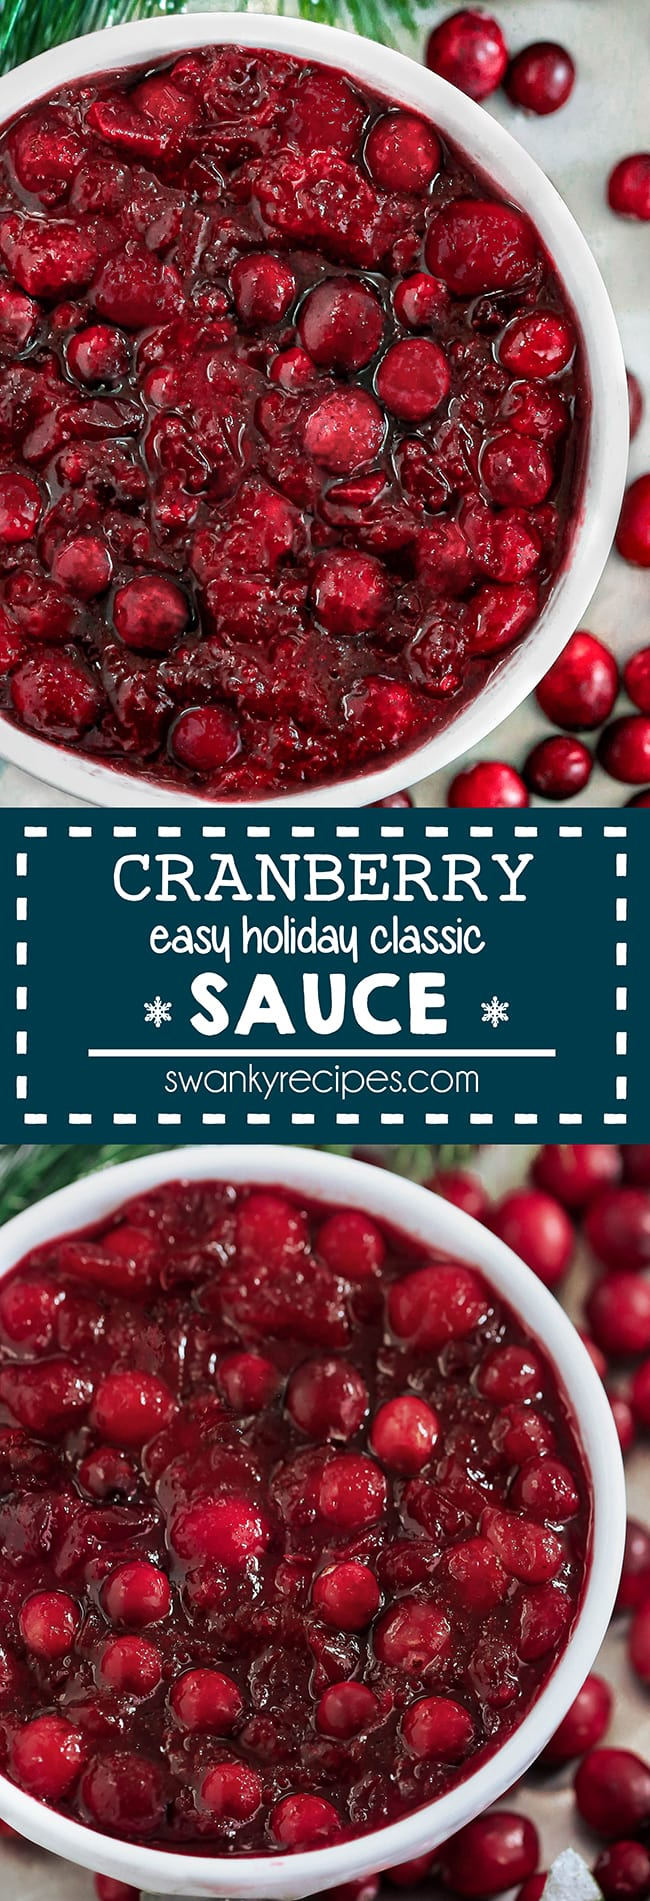 Easy Cranberry Sauce Recipe - Quick 10 minute cranberry sauce with easy ingredients. A classic Thanksgiving and Christmas side dish recipe with fresh fruit. Never buy cranberry sauce again with this delicious recipe.